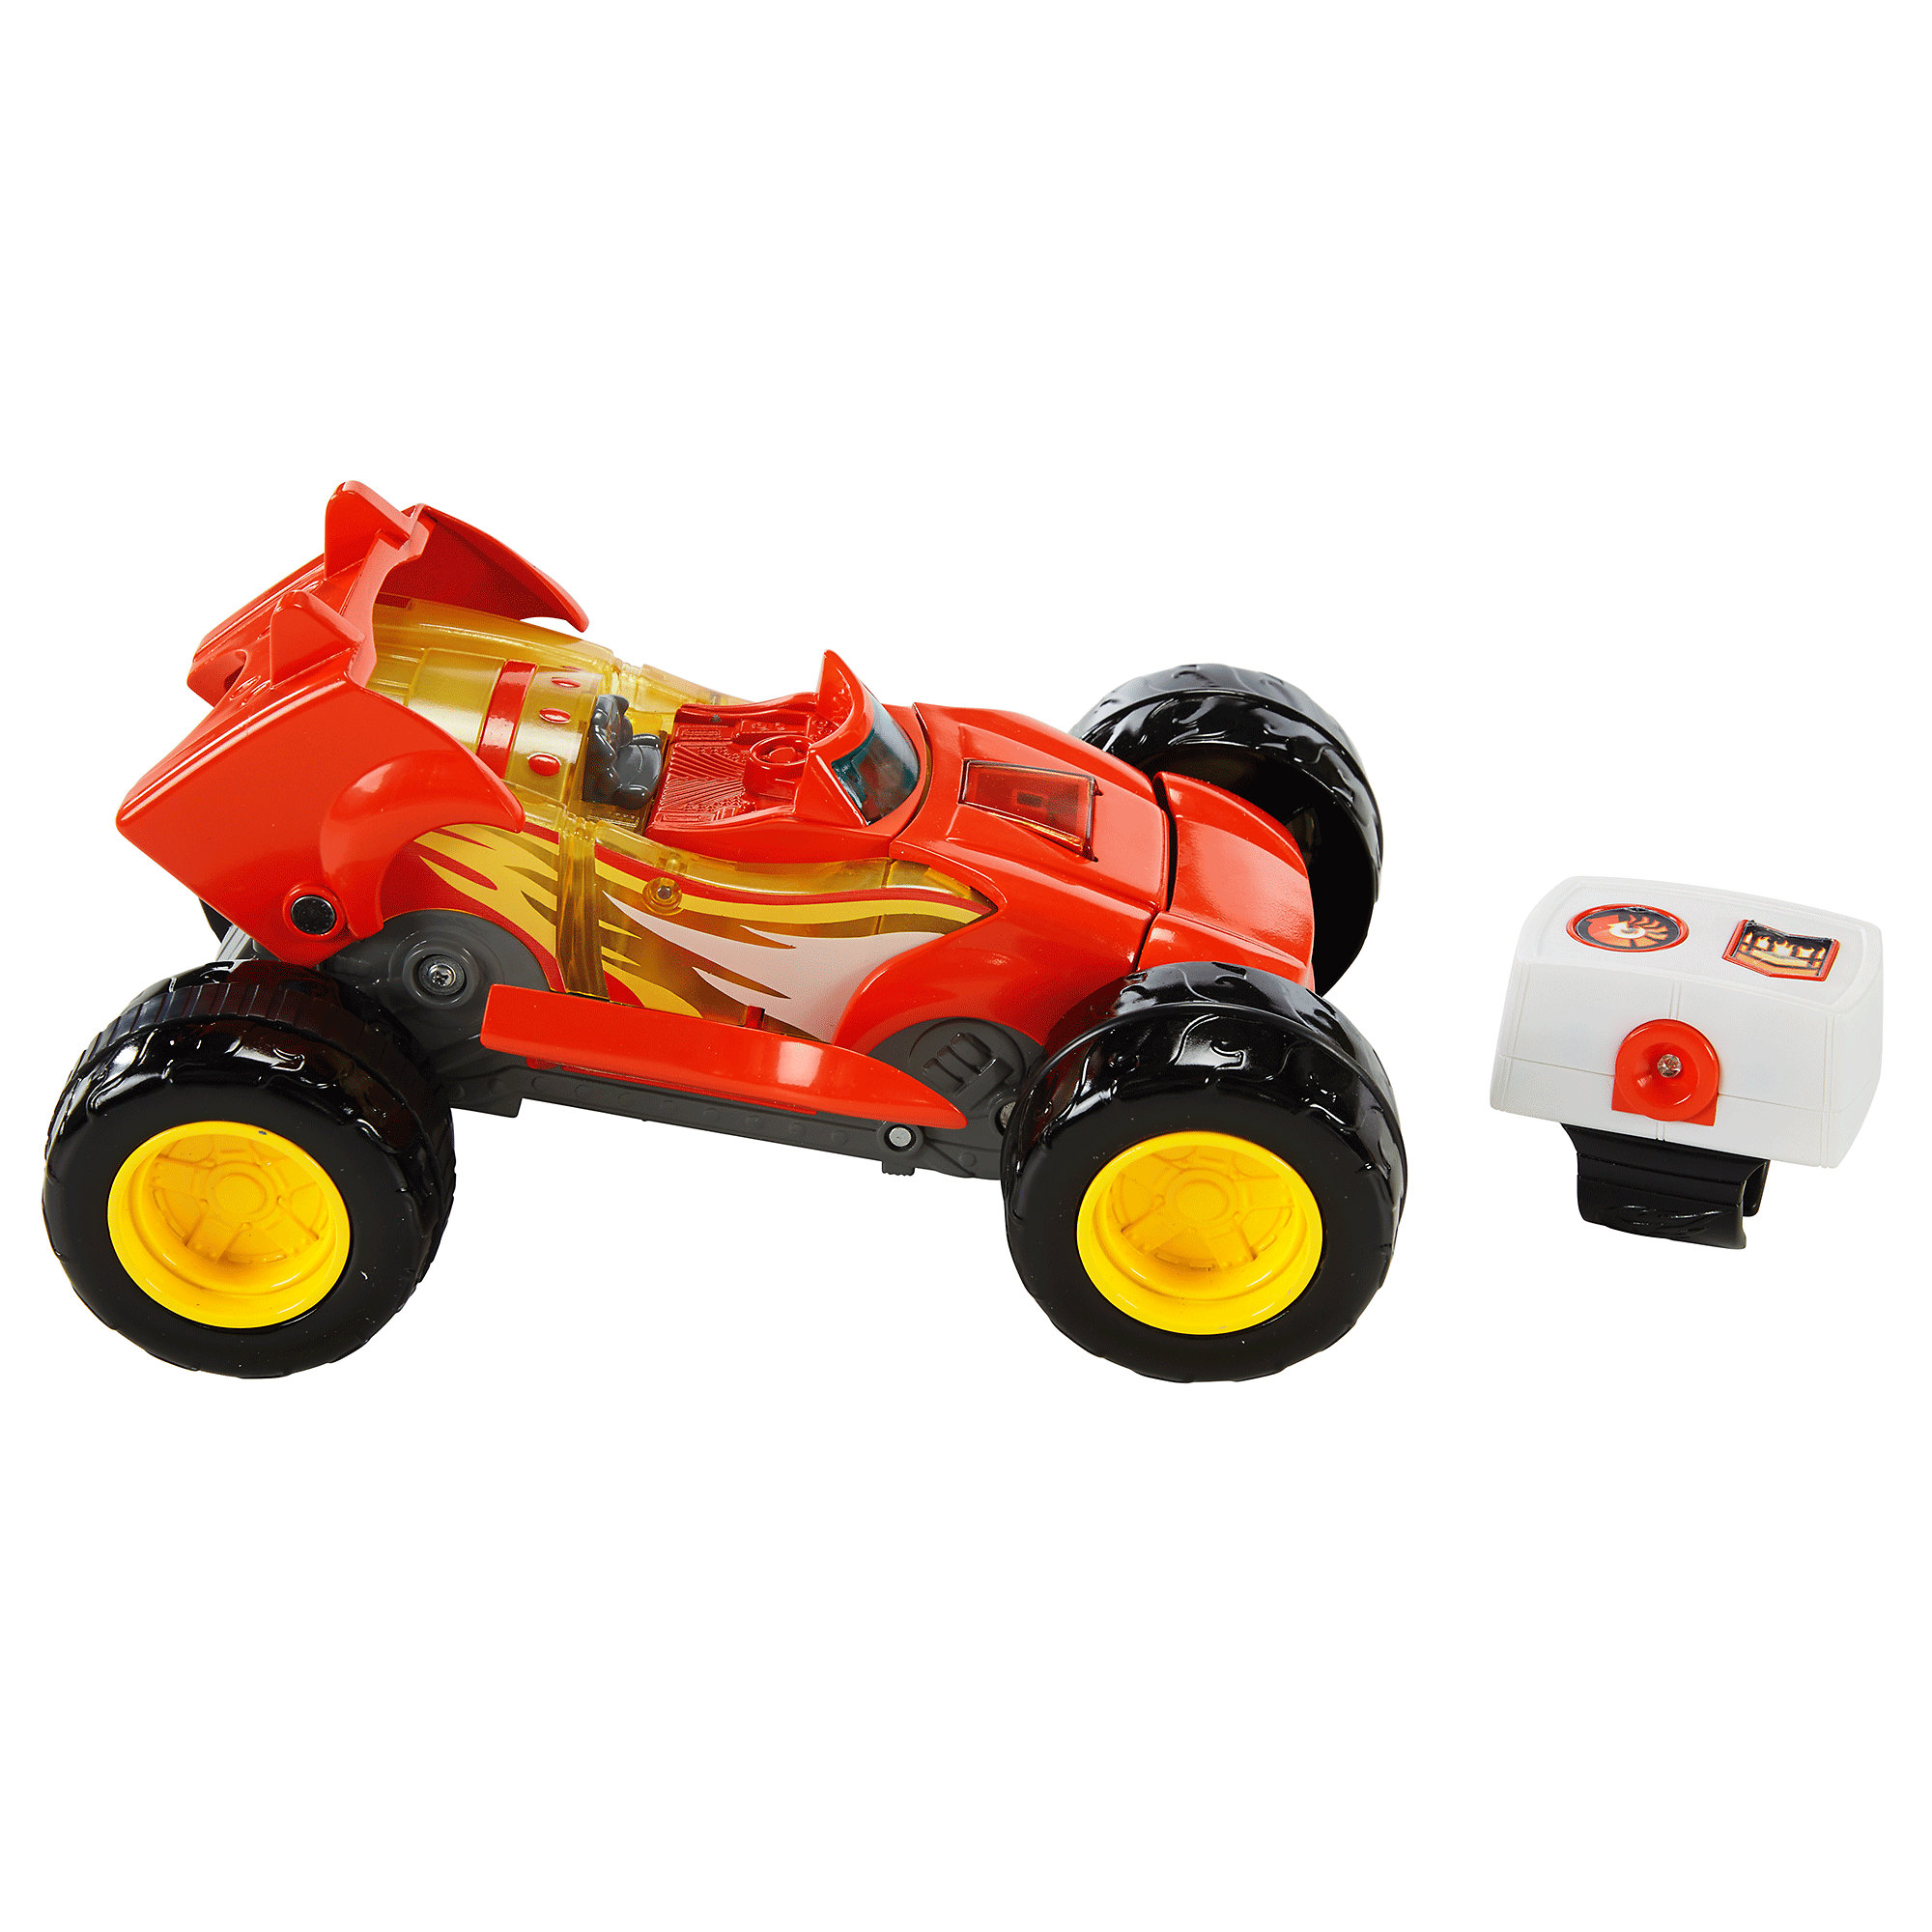 Nickelodeon Blaze and the Monster Machines Transforming R/C Blaze